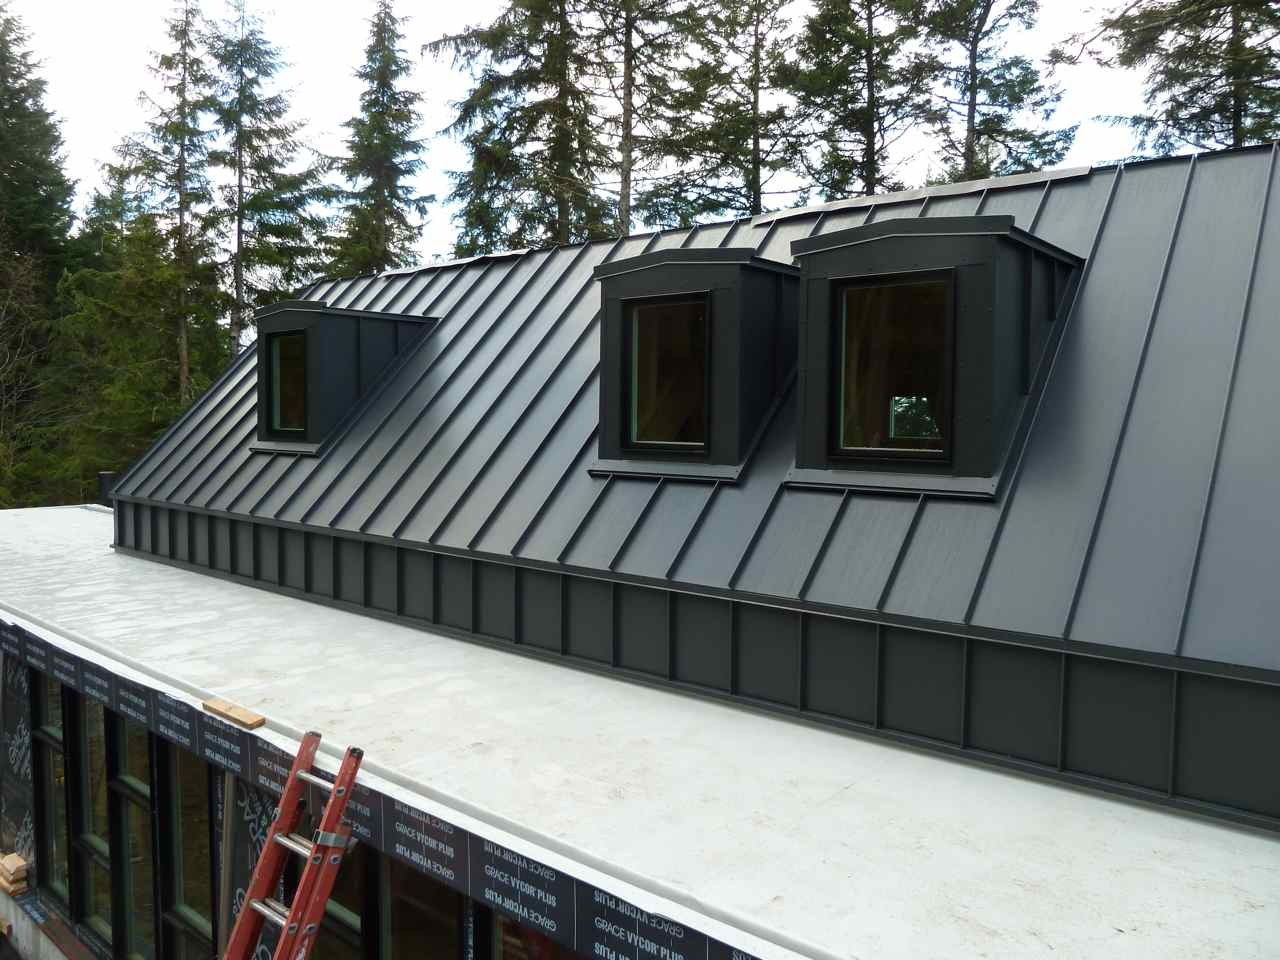 David vandervort architects lindal architects collaborative for Snow load roof pitch